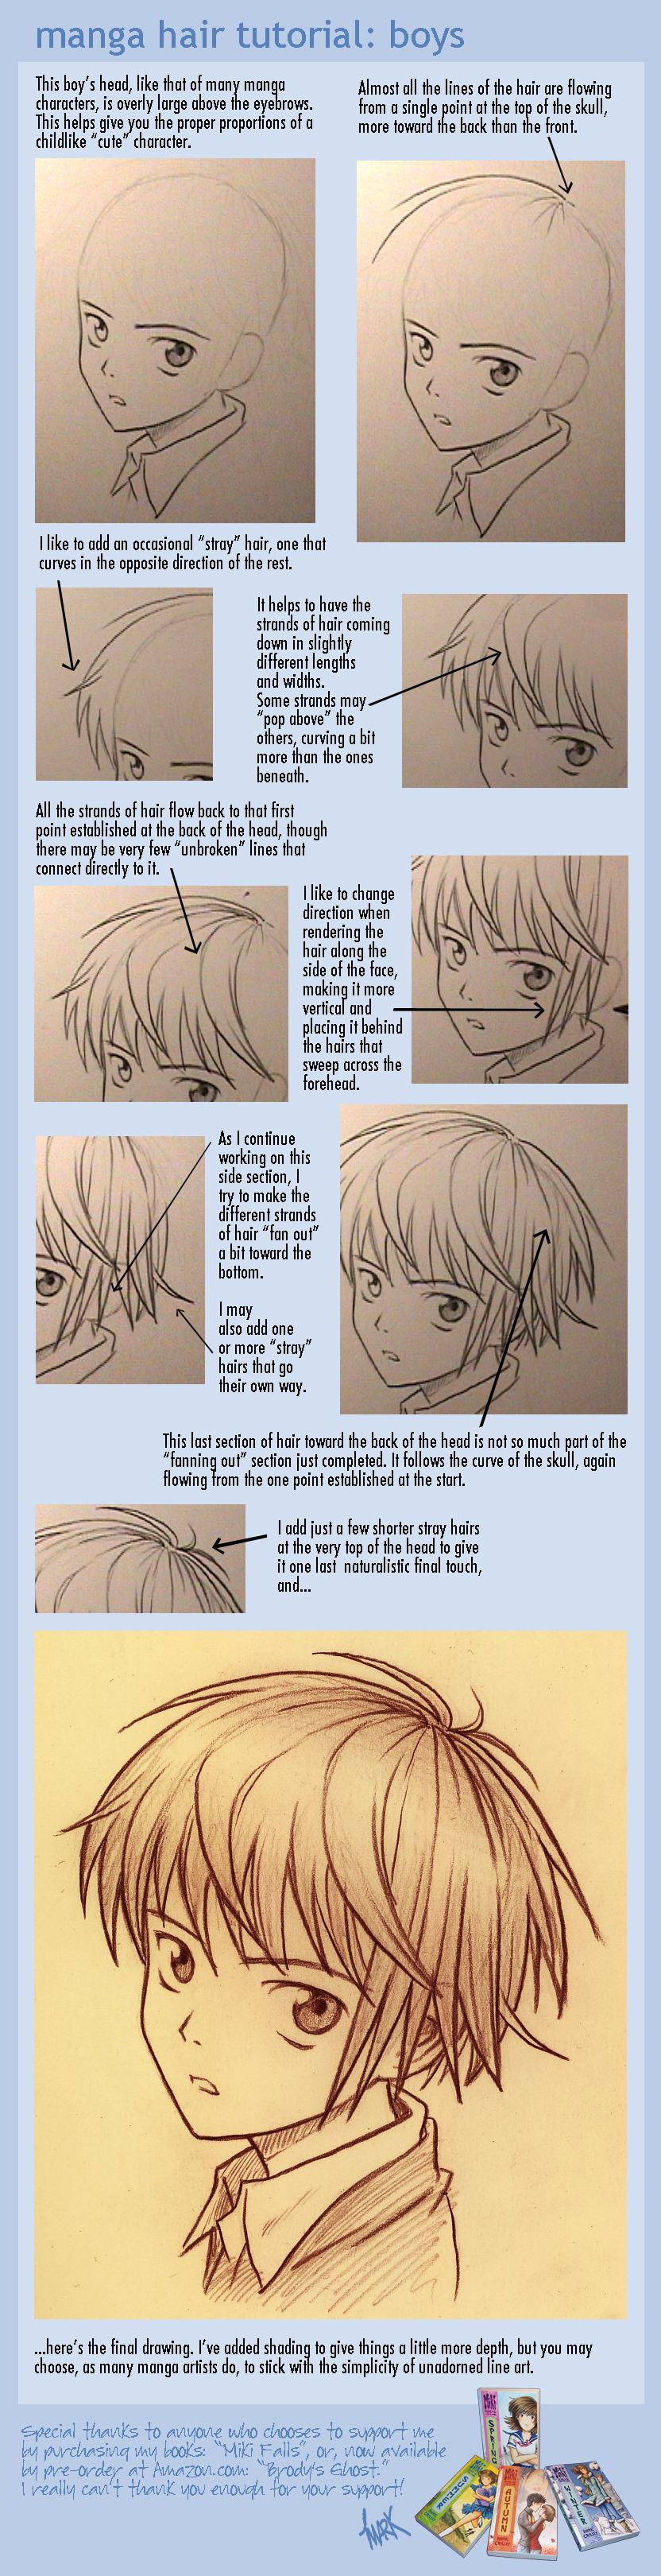 manga hair tutorial: boys by markcrilley